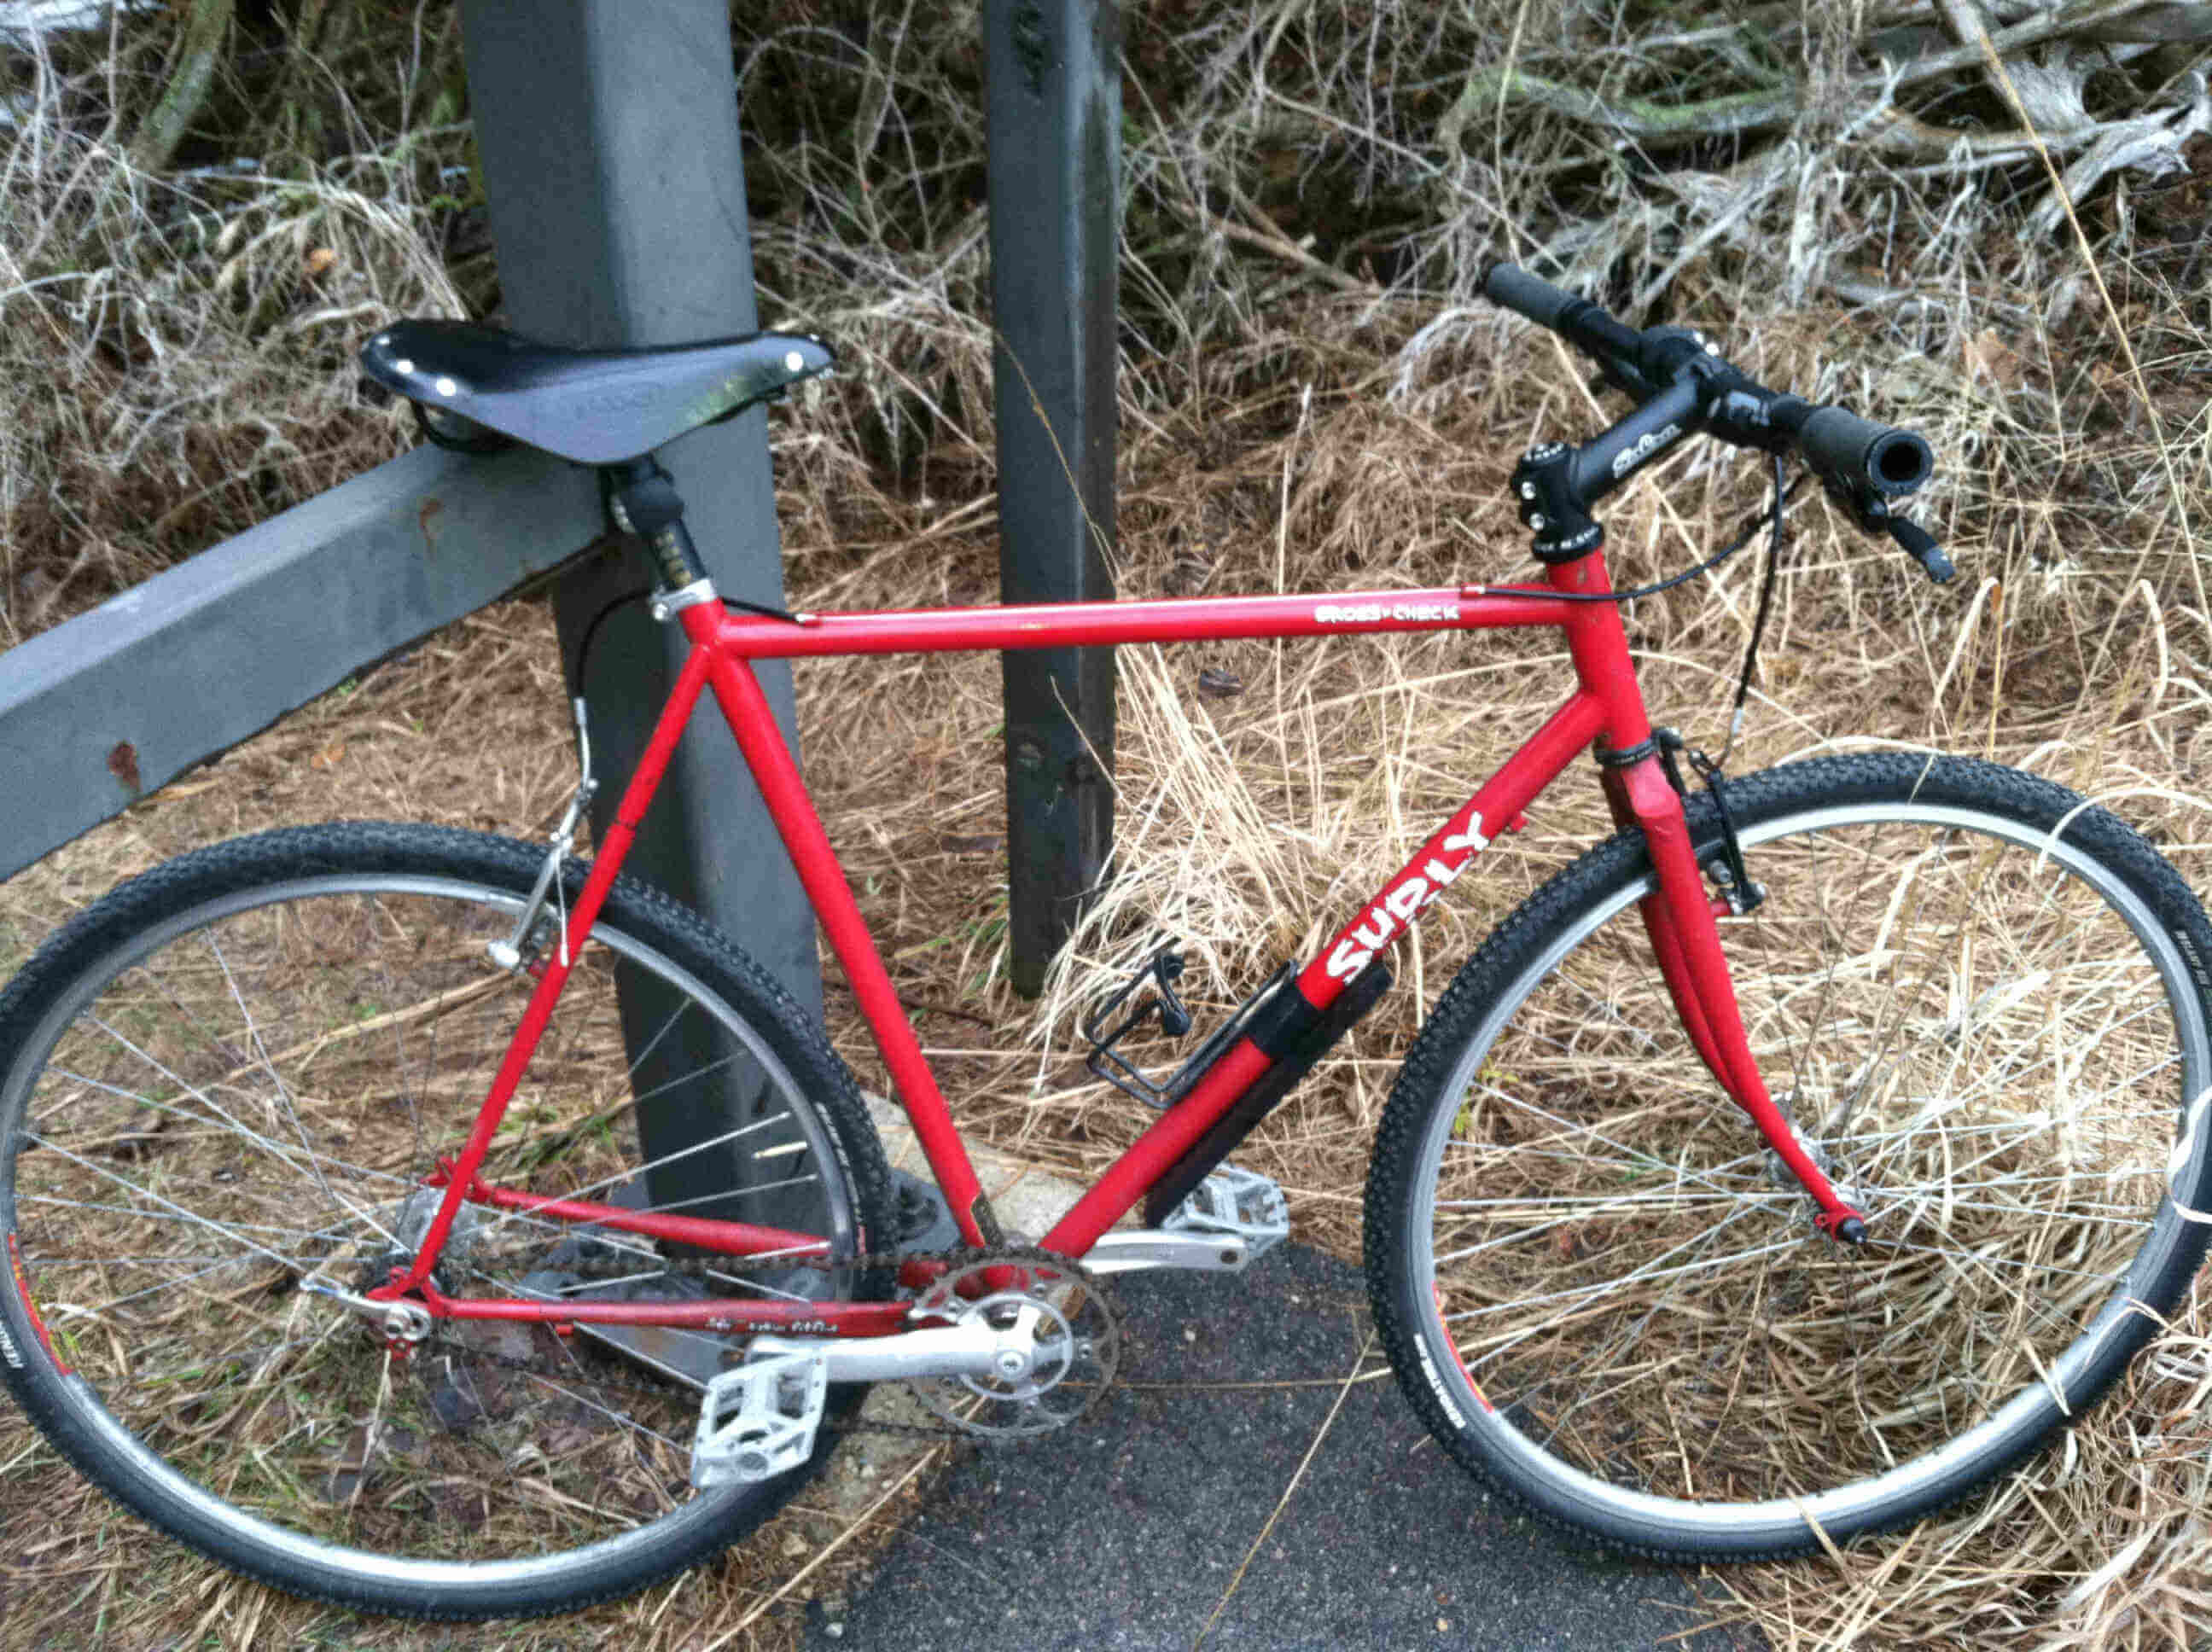 Right side view of a red Surly Cross Check bike, leaning on a steel gate post, with tall brown grass in the background